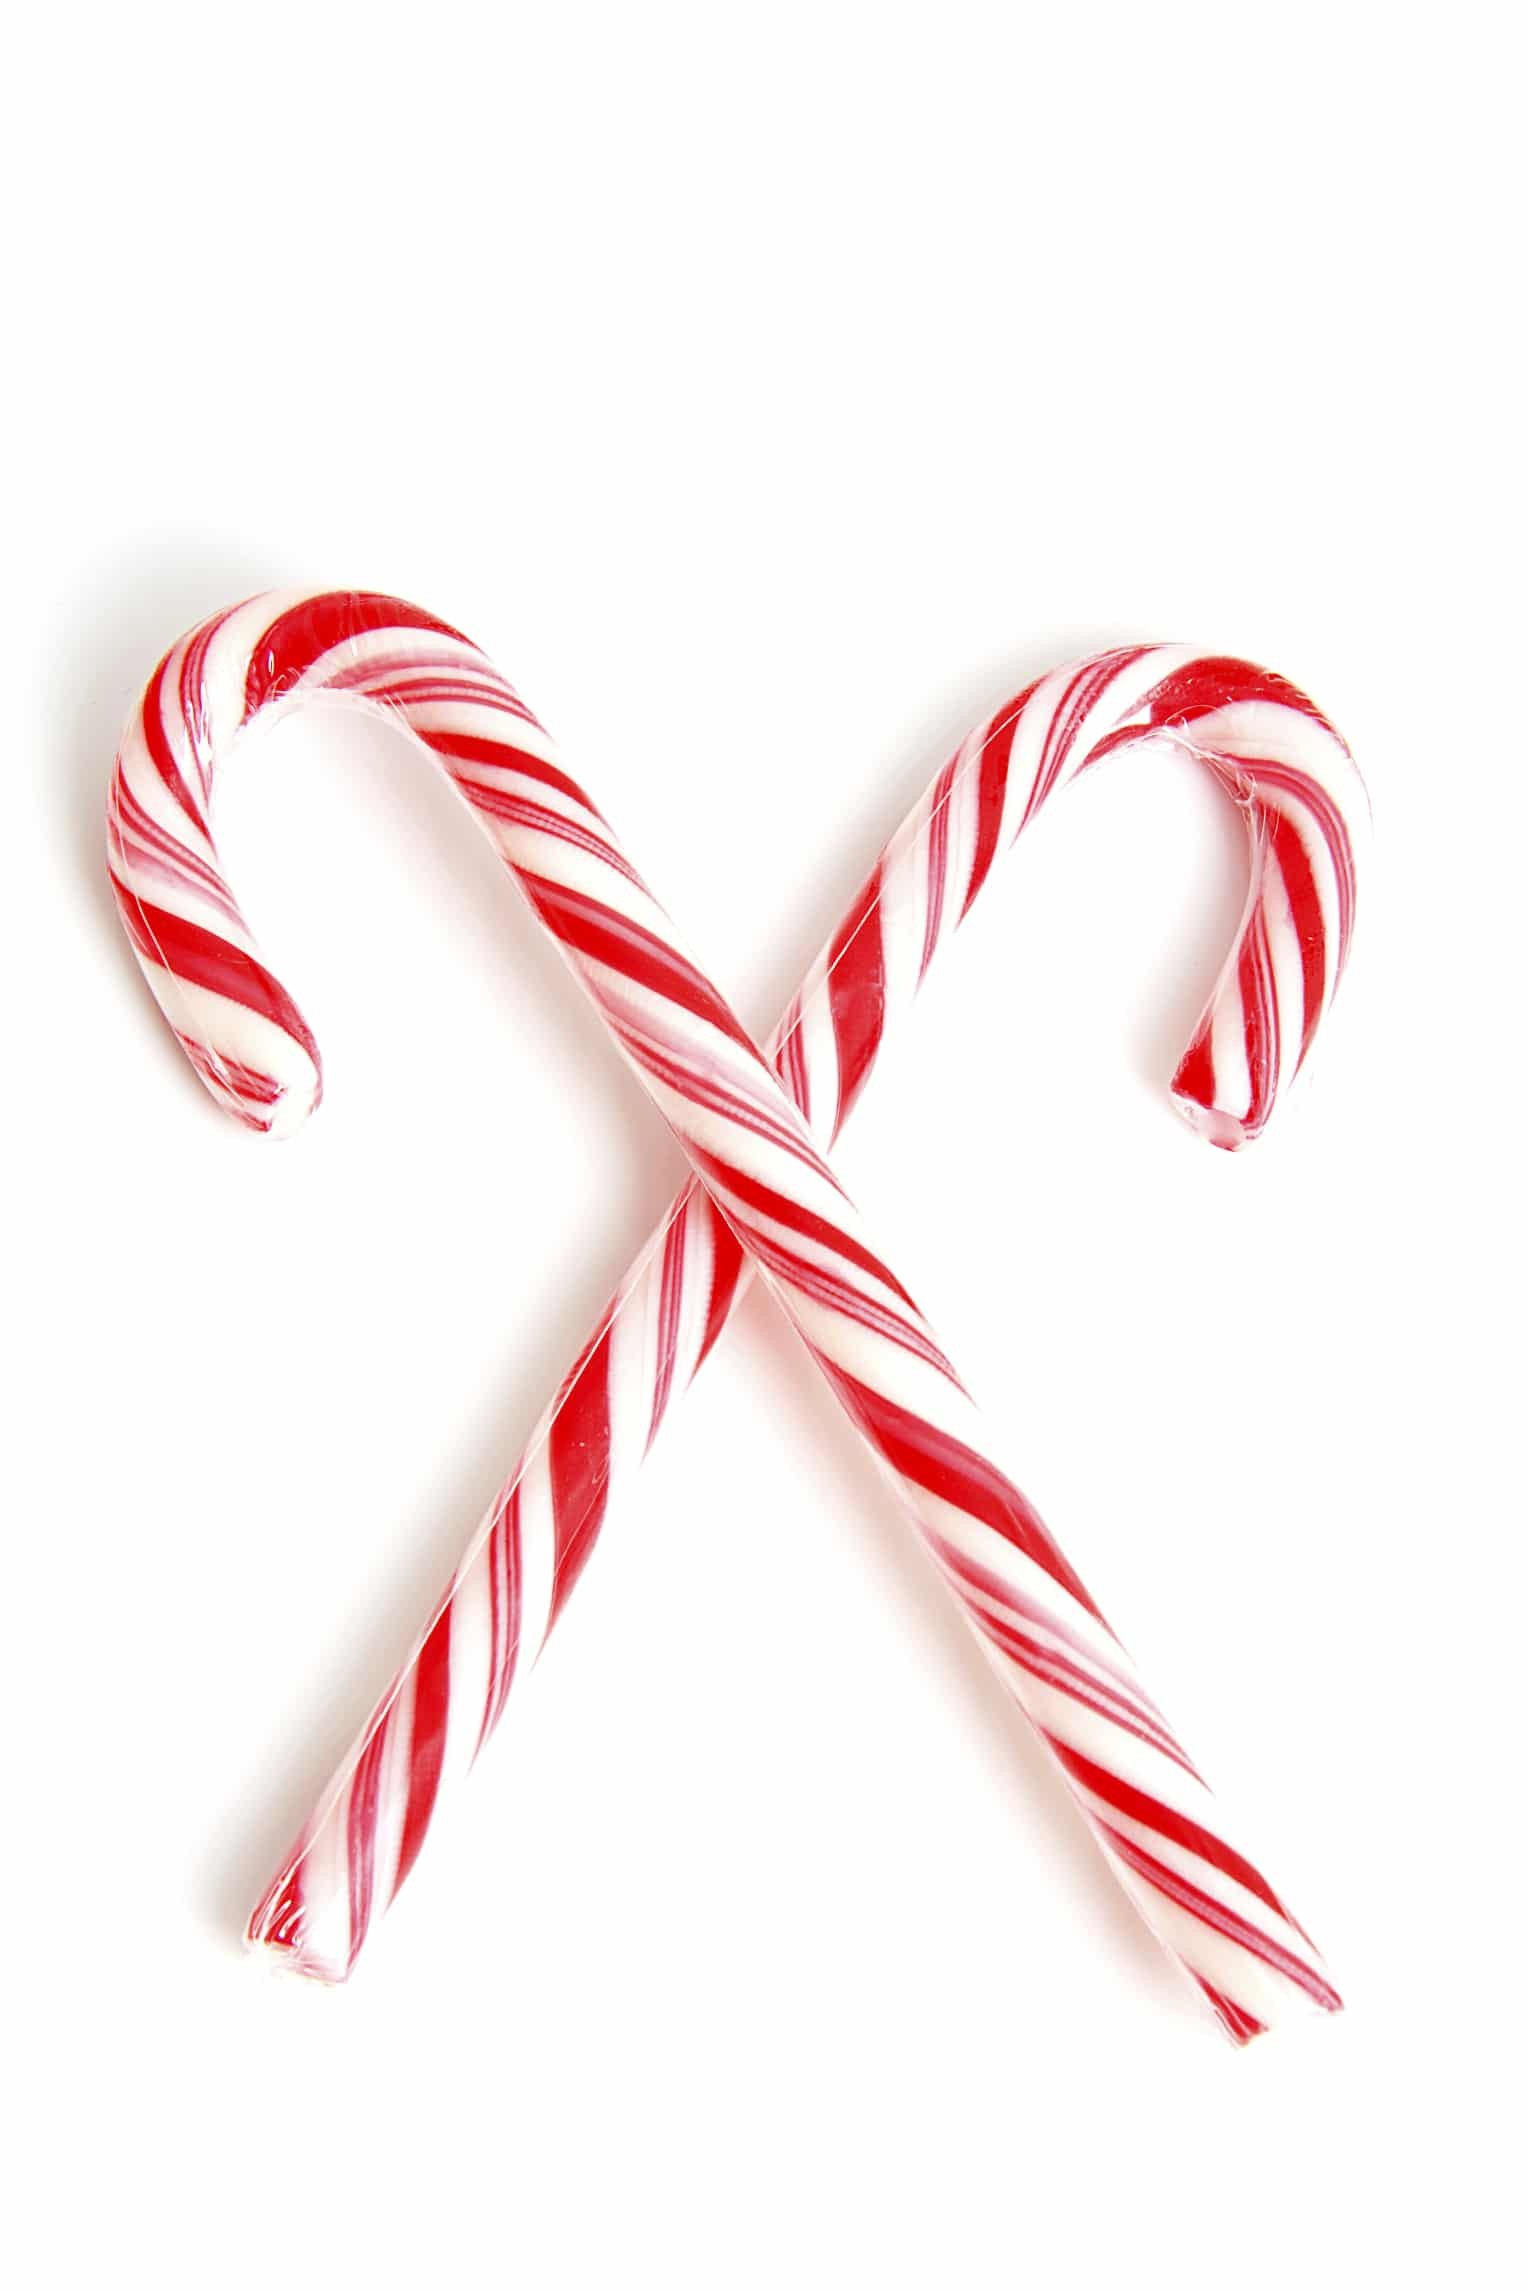 Traditional christmas candy cane  isolated on white background